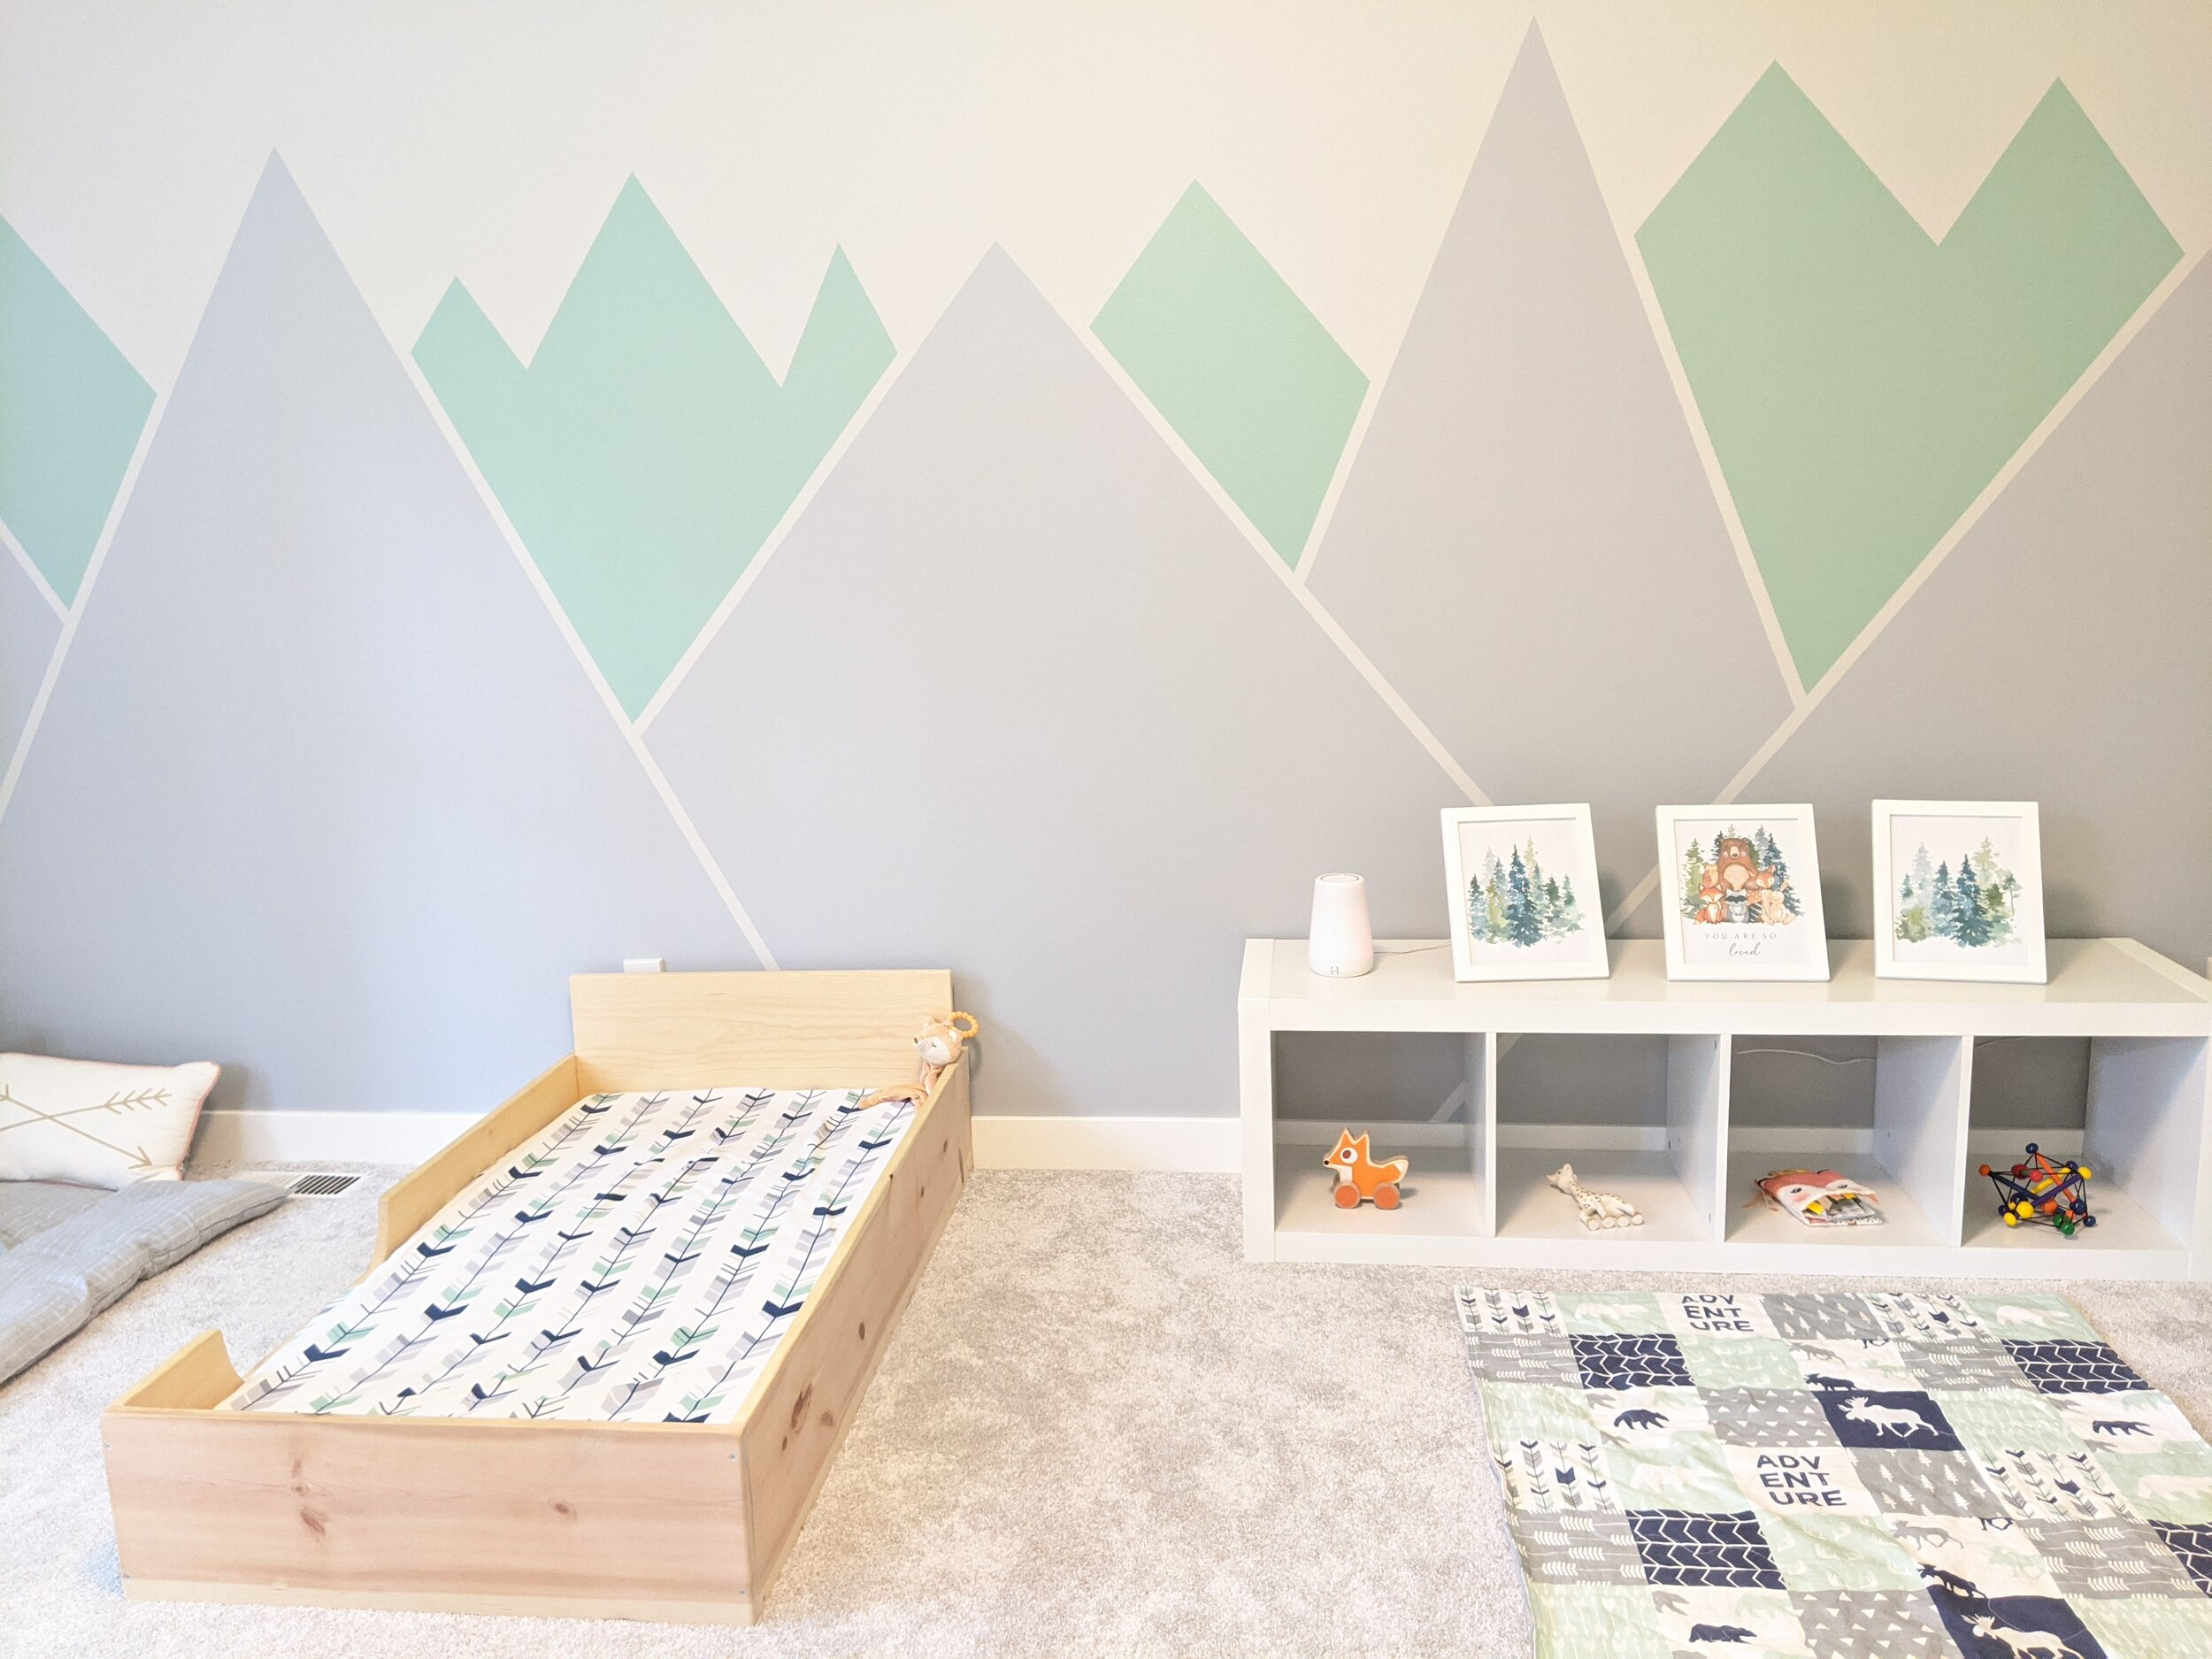 Sleep And Floor Bed Tips With Sleep Consultant Megan Kumpf Montessori In Real Life